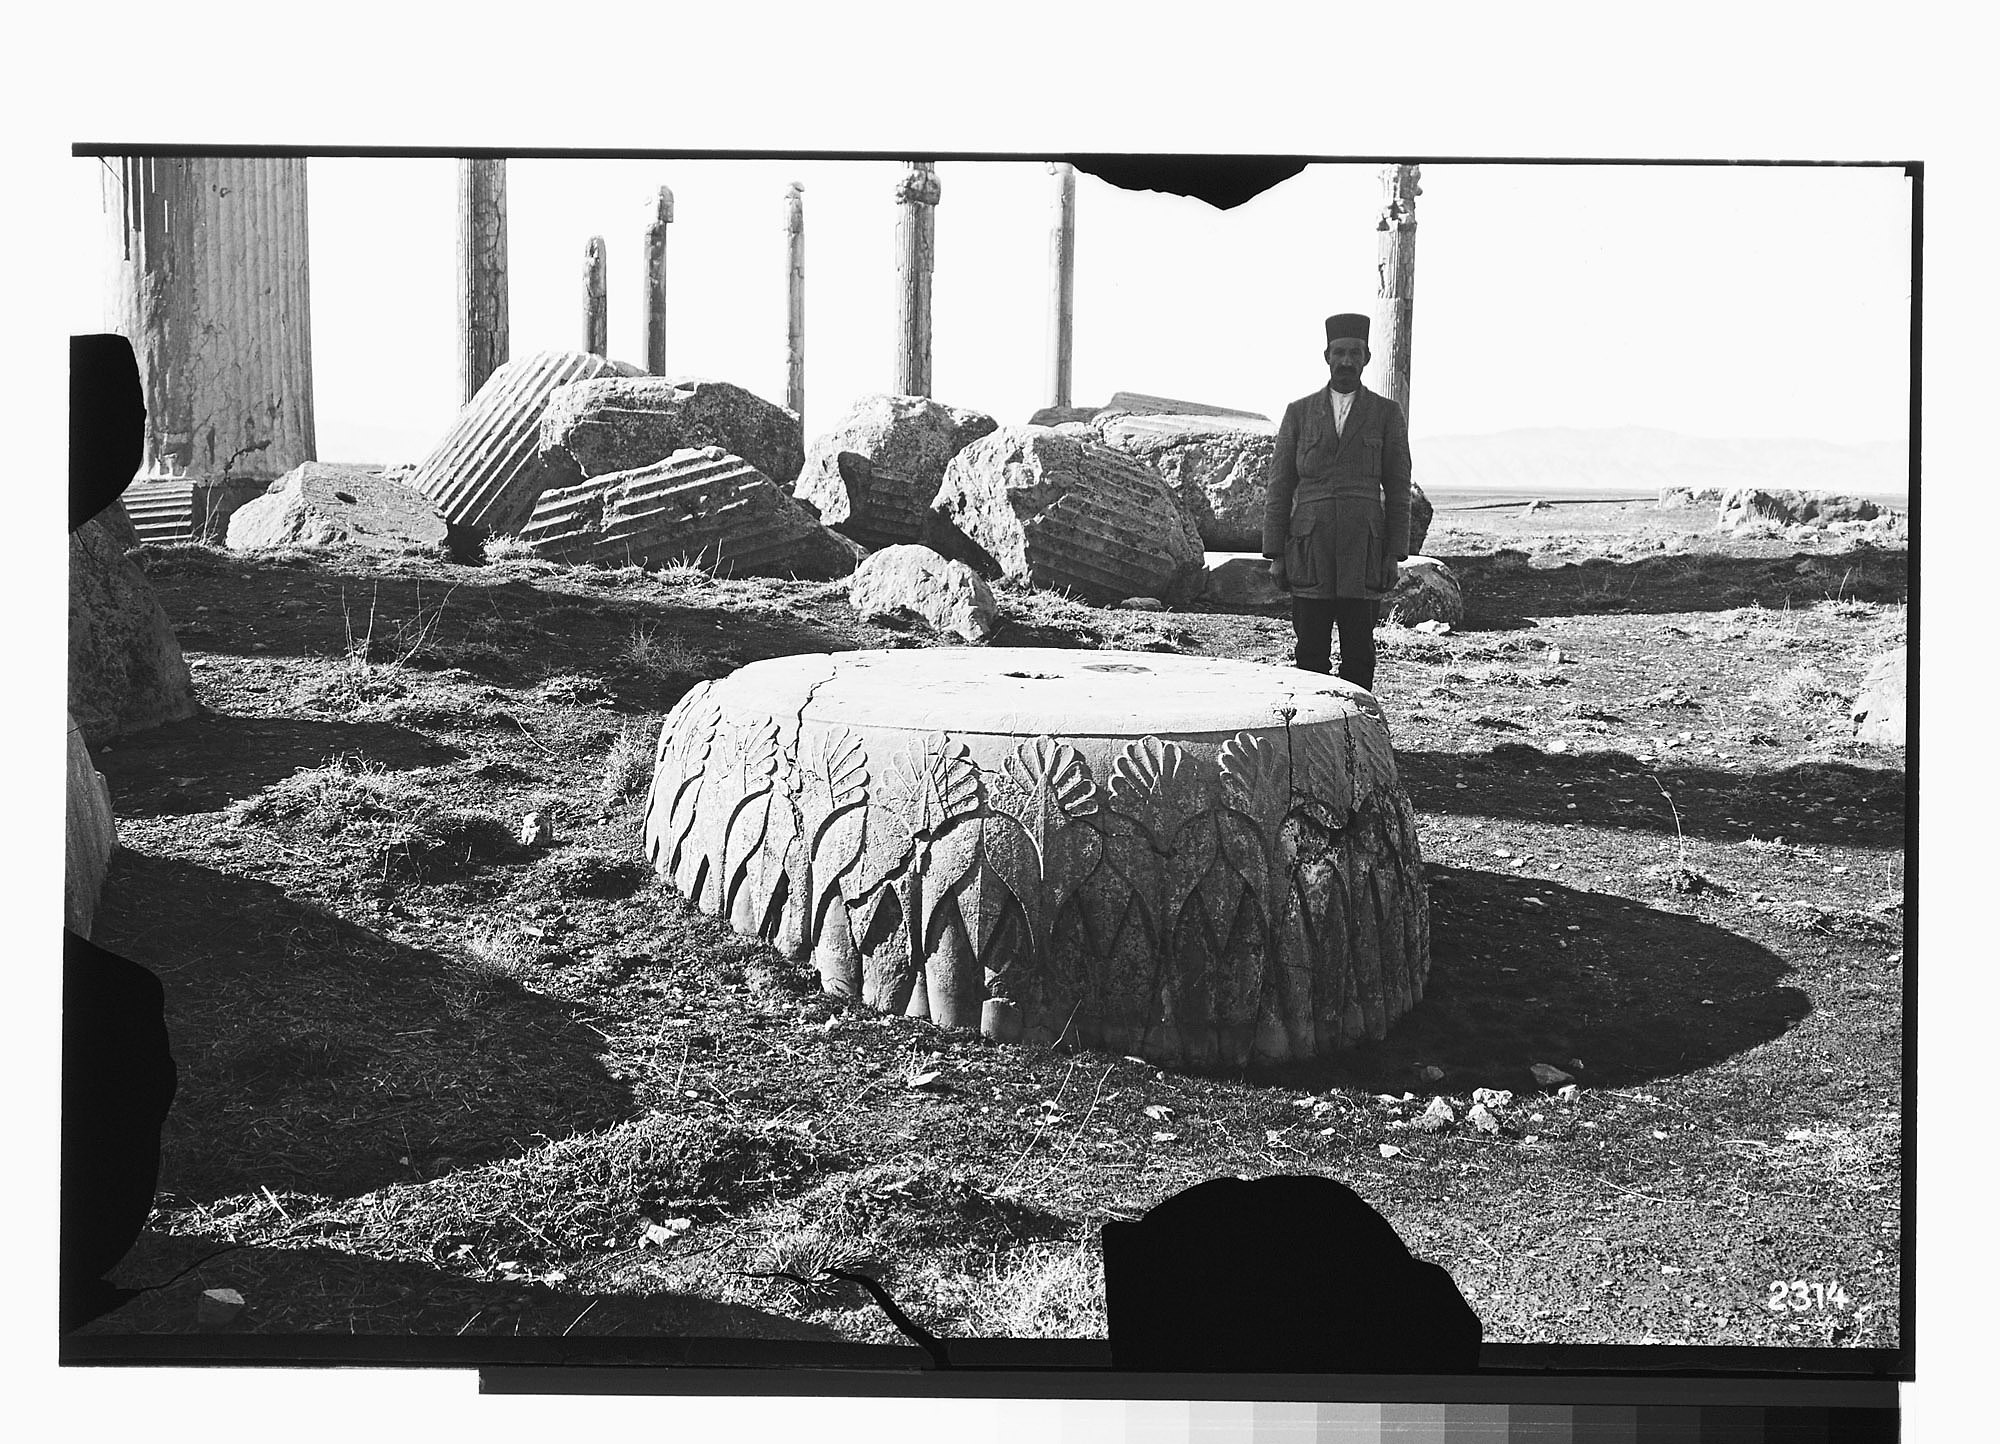 images for Excavation of Persepolis (Iran): Apadana, Campaniform Column Base: View before Excavation graphic